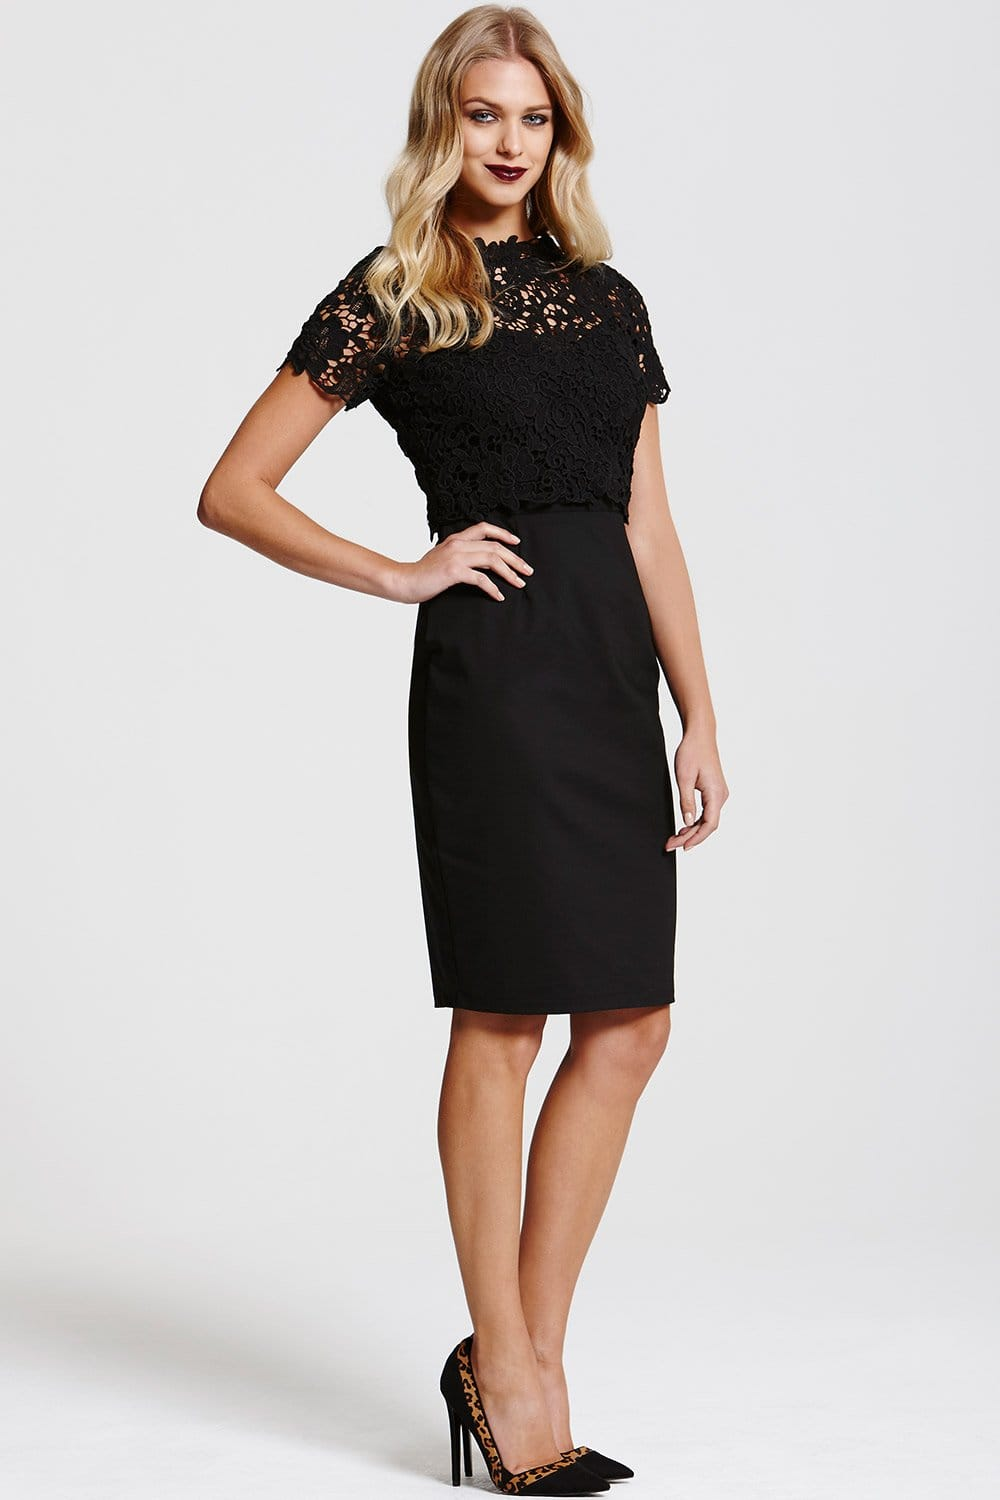 Kohl's has a wide variety of dresses to choose from with many different styles available, including black holiday dresses, petite black dresses and long black dresses. At Kohl's, you know that you can find all the apparel you need to be prepared for every season and any event.